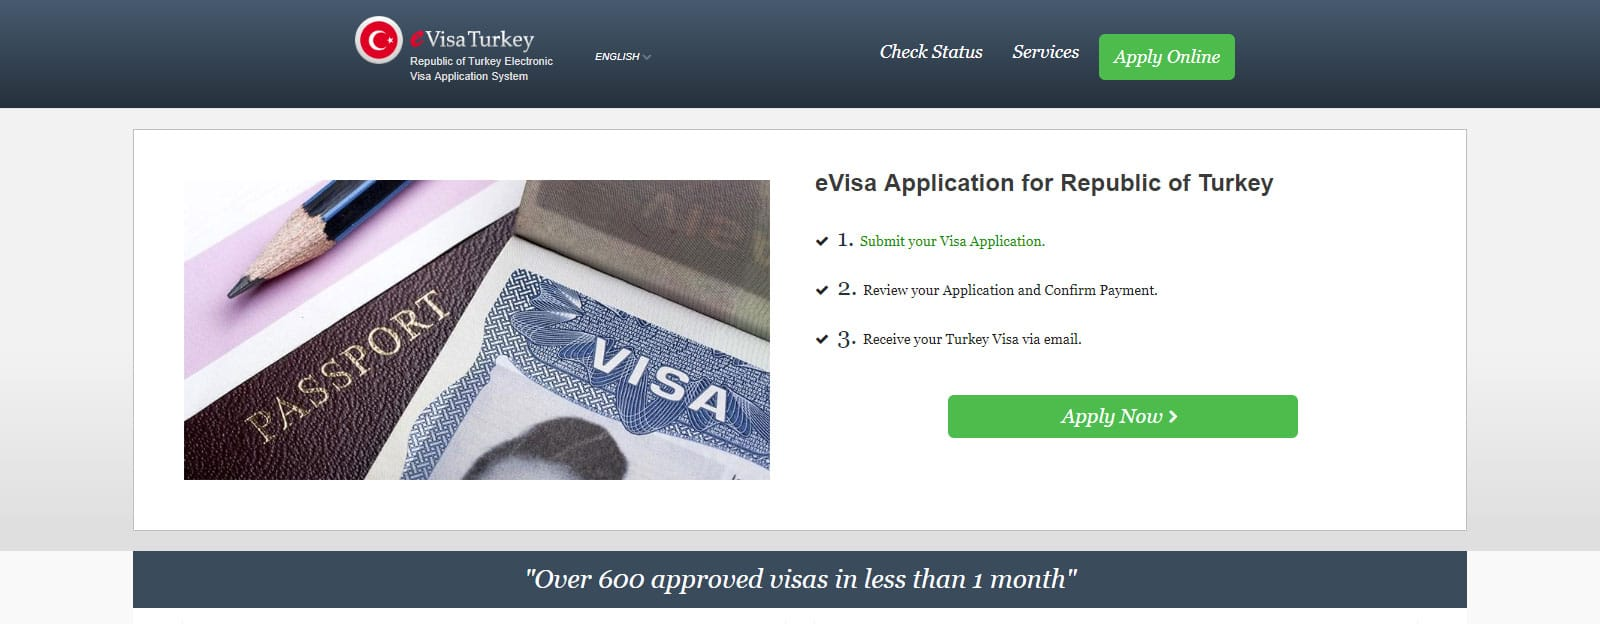 Turkey Visa Requirements, Fees and Information